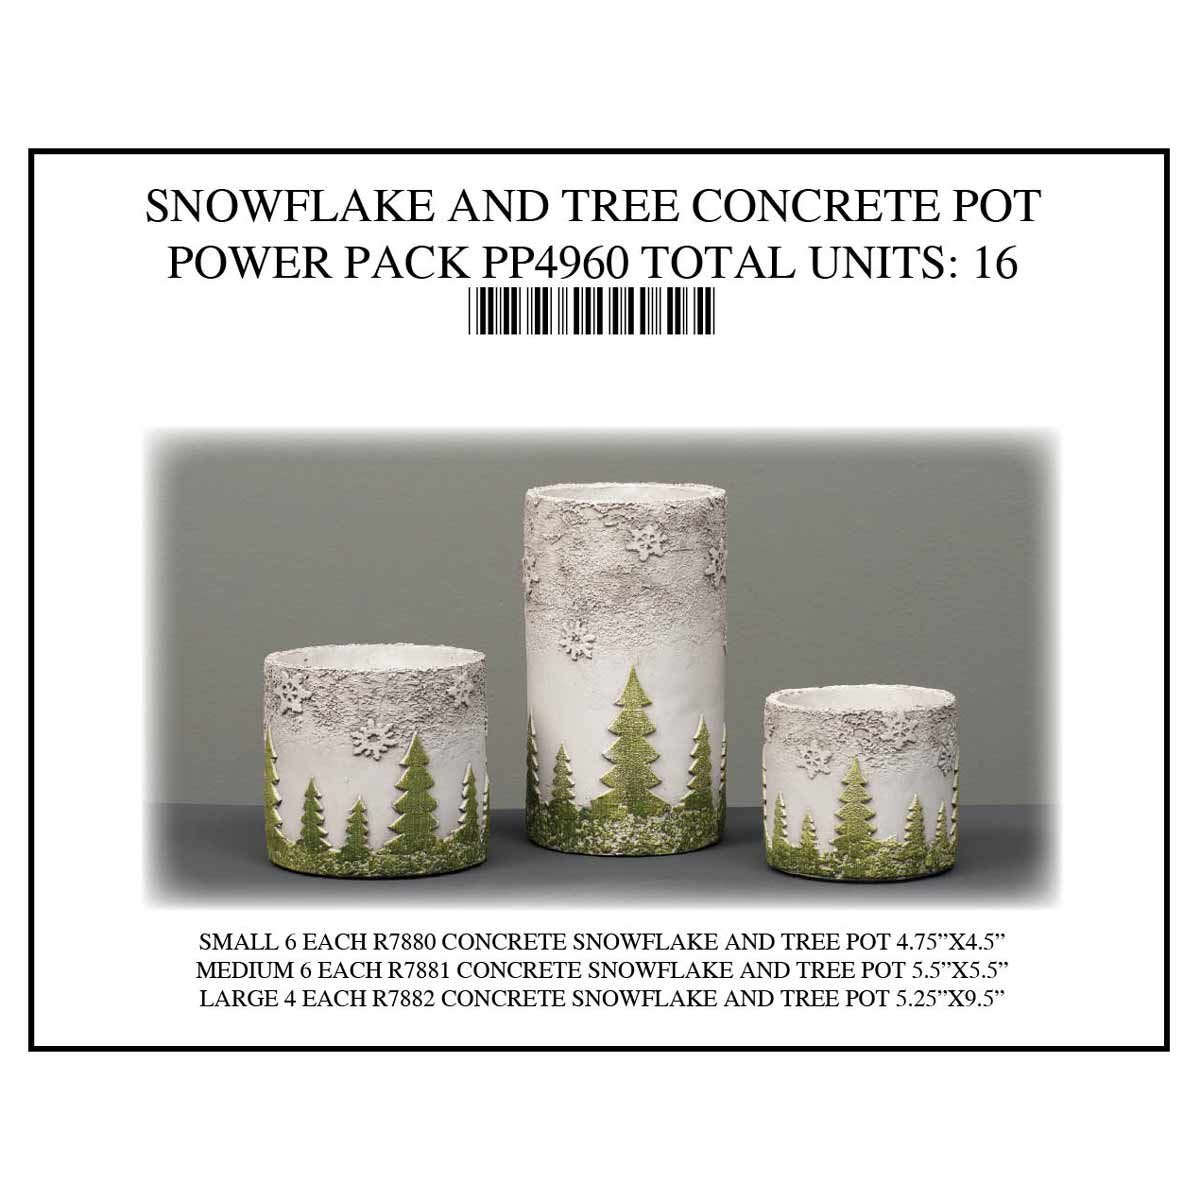 POT TREE SNOWFLAKE Power Pack 17 Units